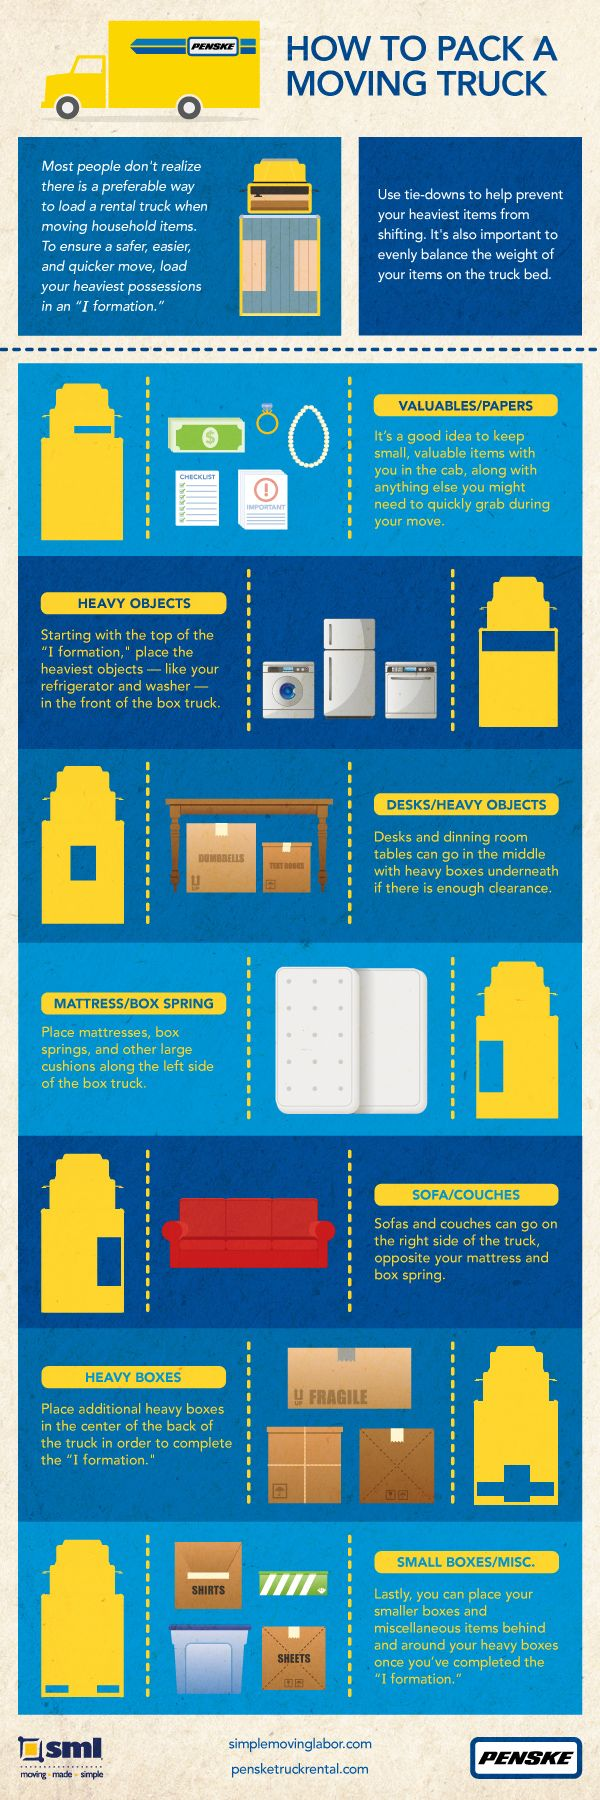 Infographic: How to Pack a Penske Moving Truck